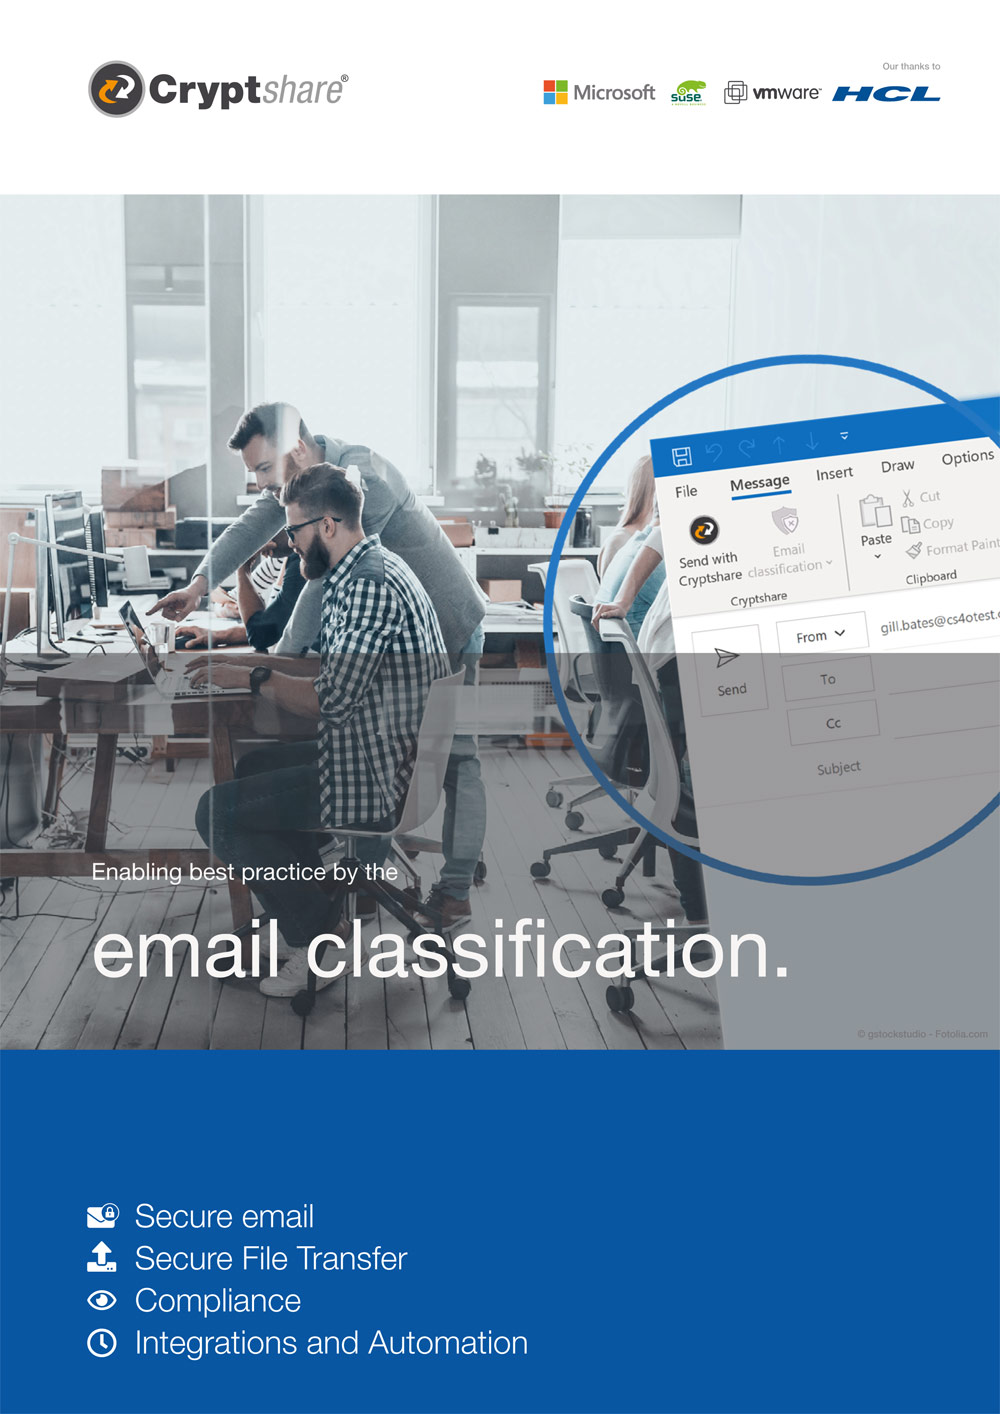 Cryptshare-for-Office365-Outlook_Protective-email-classification_EN-EU